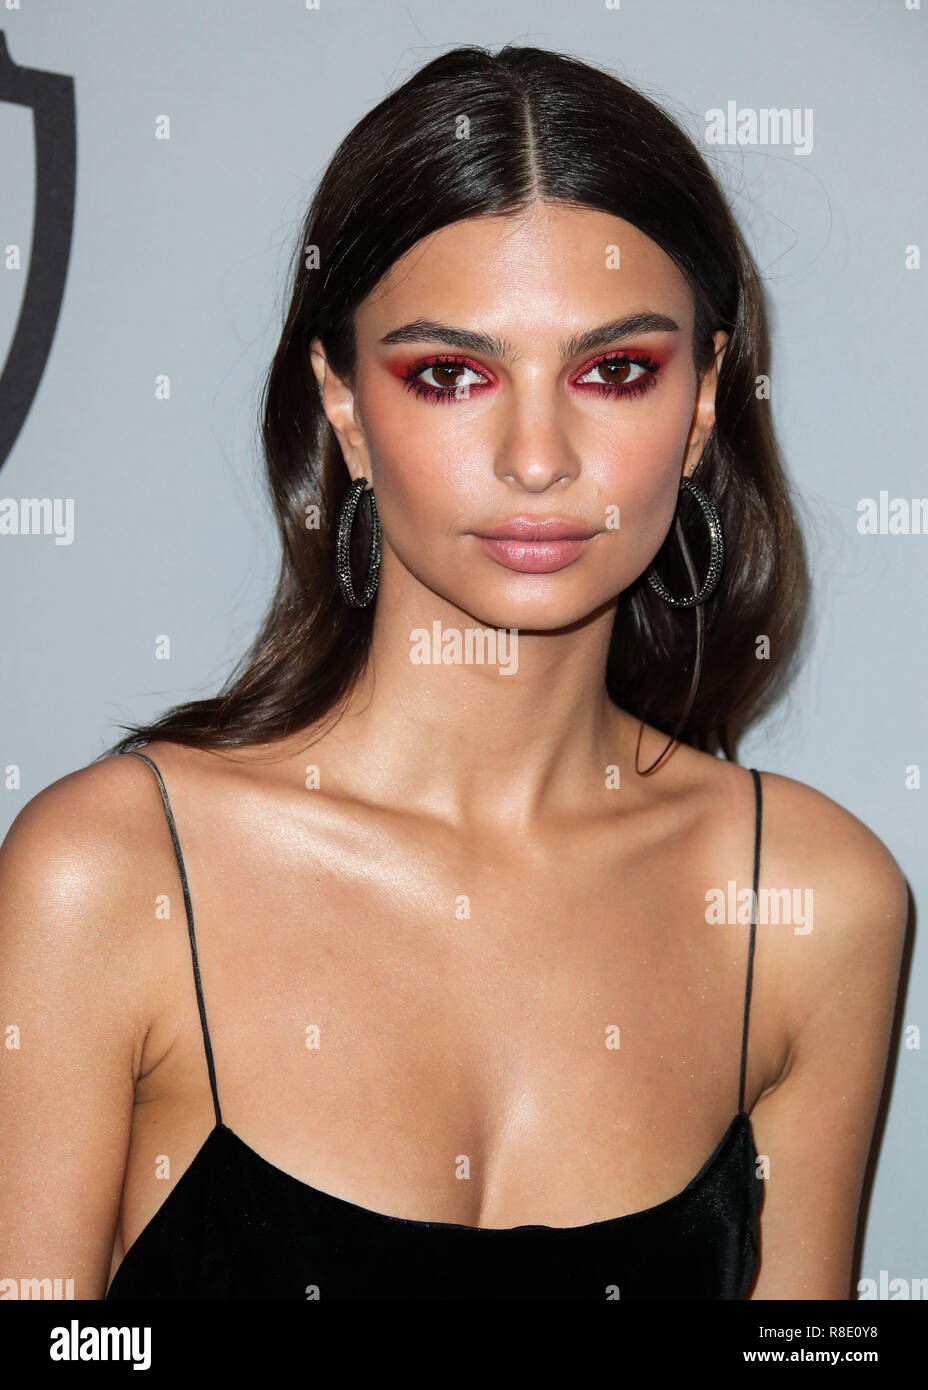 BEVERLY HILLS, LOS ANGELES, CA, USA - JANUARY 07: Emily Ratajkowski at the 2018 InStyle And Warner Bros. Pictures Golden Globe Awards After Party held at The Beverly Hilton Hotel on January 7, 2018 in Beverly Hills, Los Angeles, California, United States. (Photo by Xavier Collin/Image Press Agency) Stock Photo